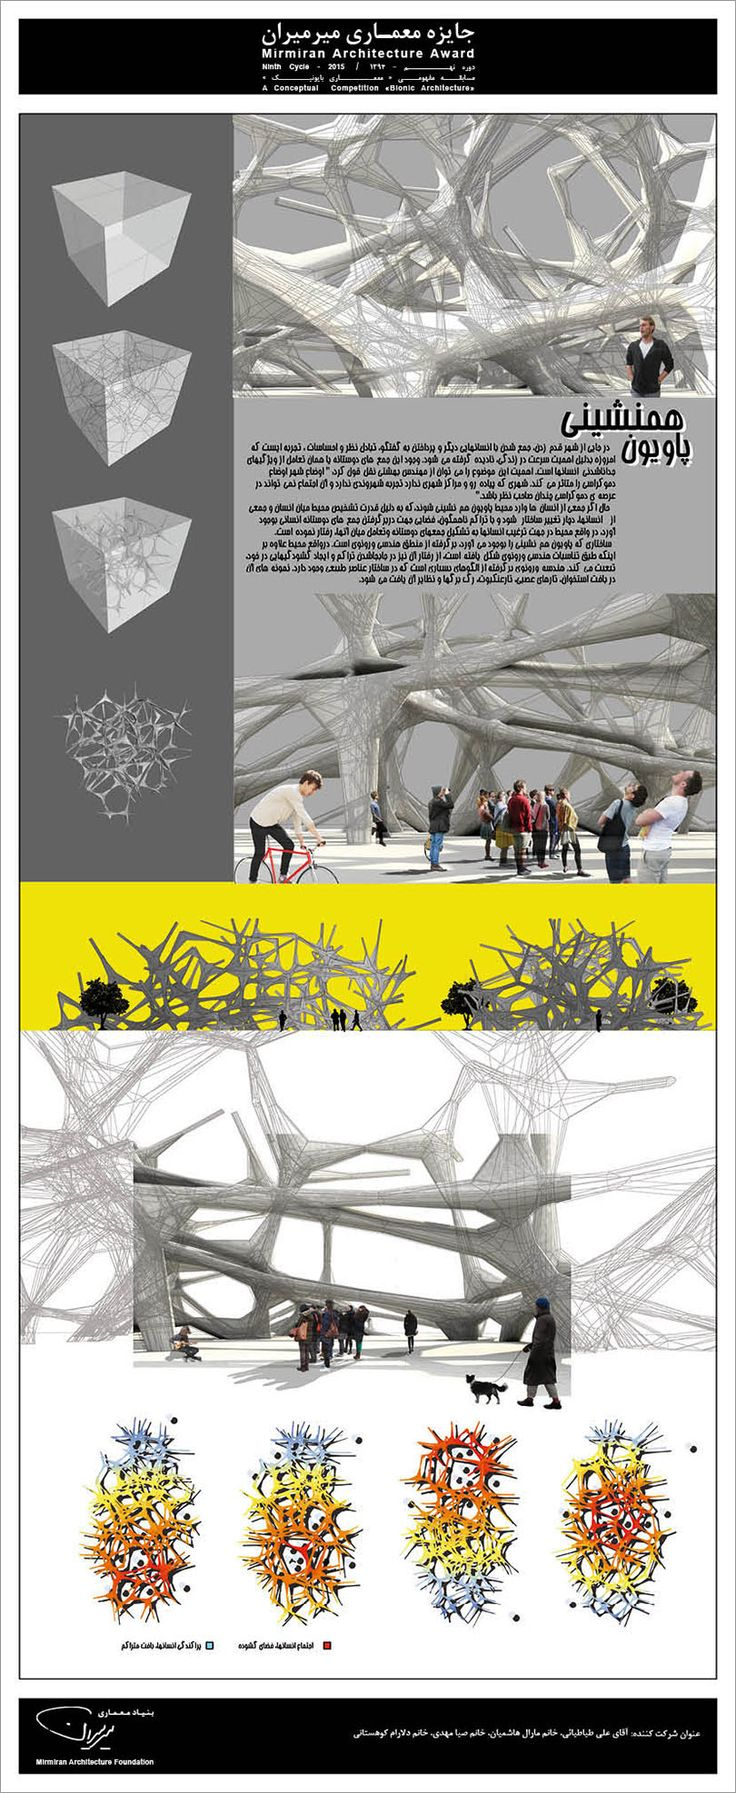 Winners of Mirmiran Architecture Award (Bionic Architecture)